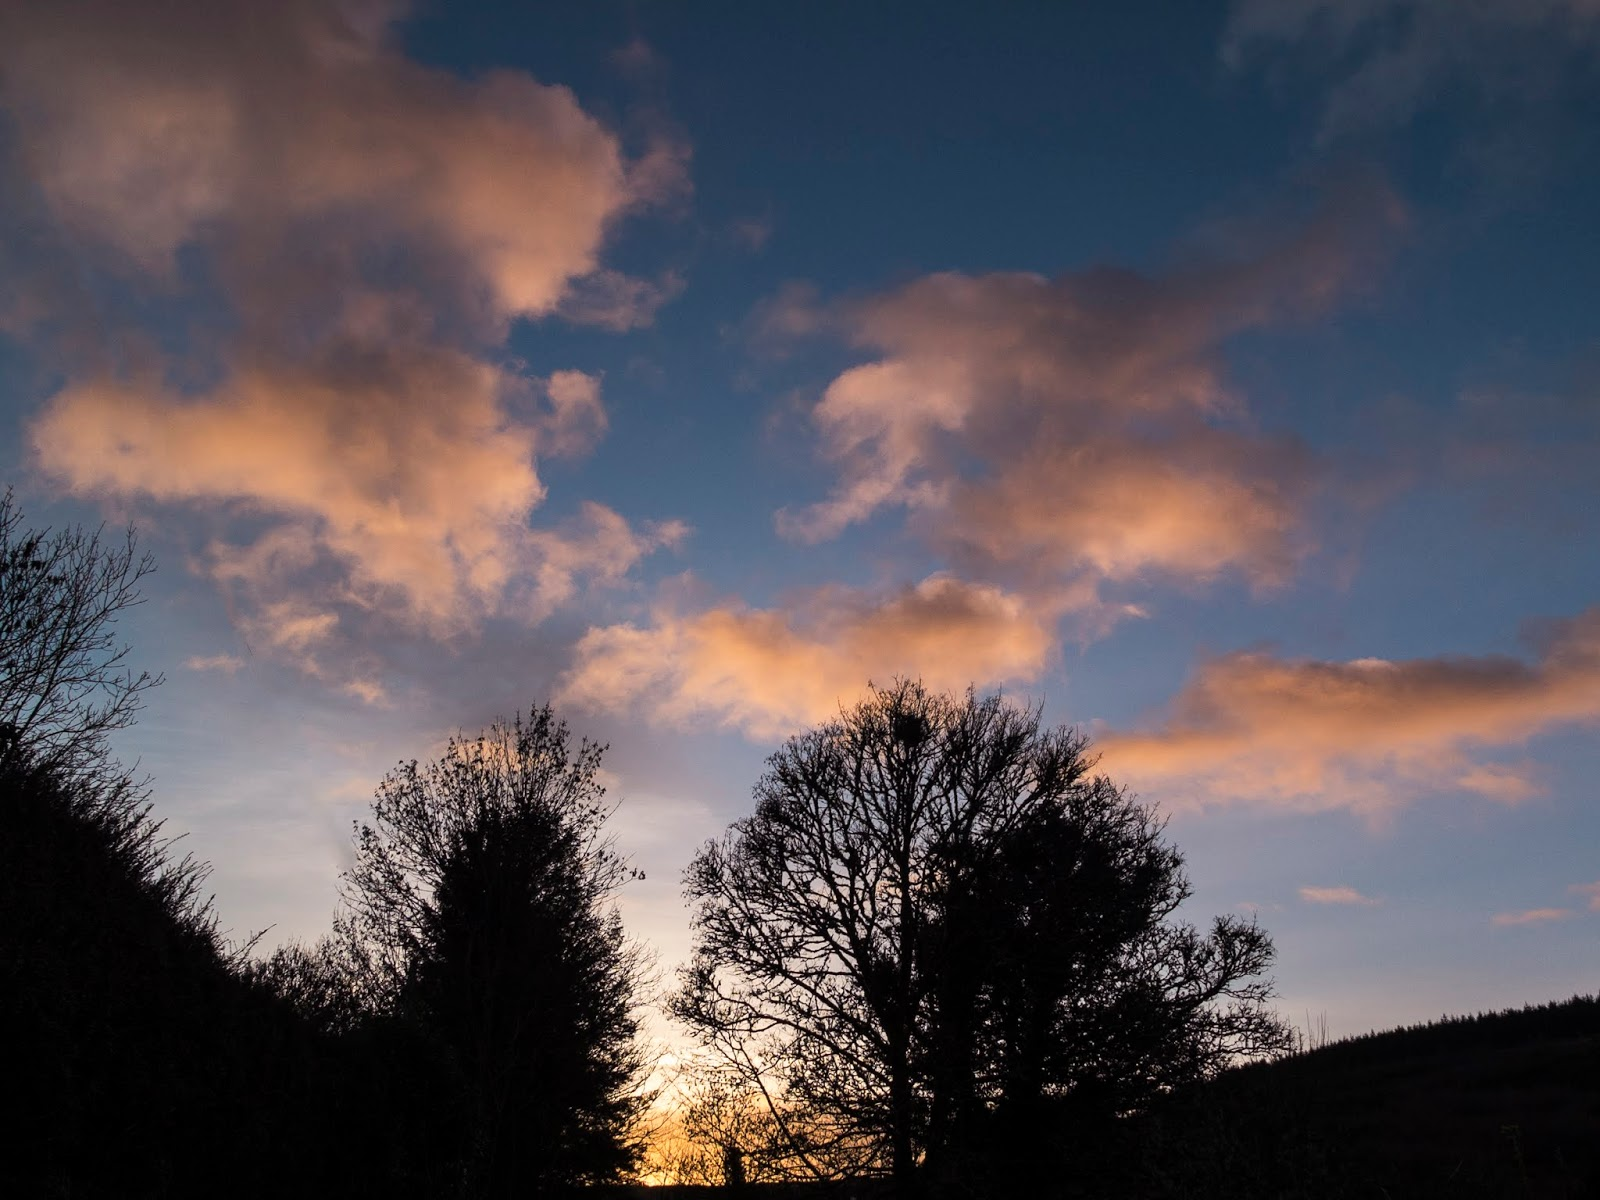 Sunset clouds over trees in a valley in North Cork.